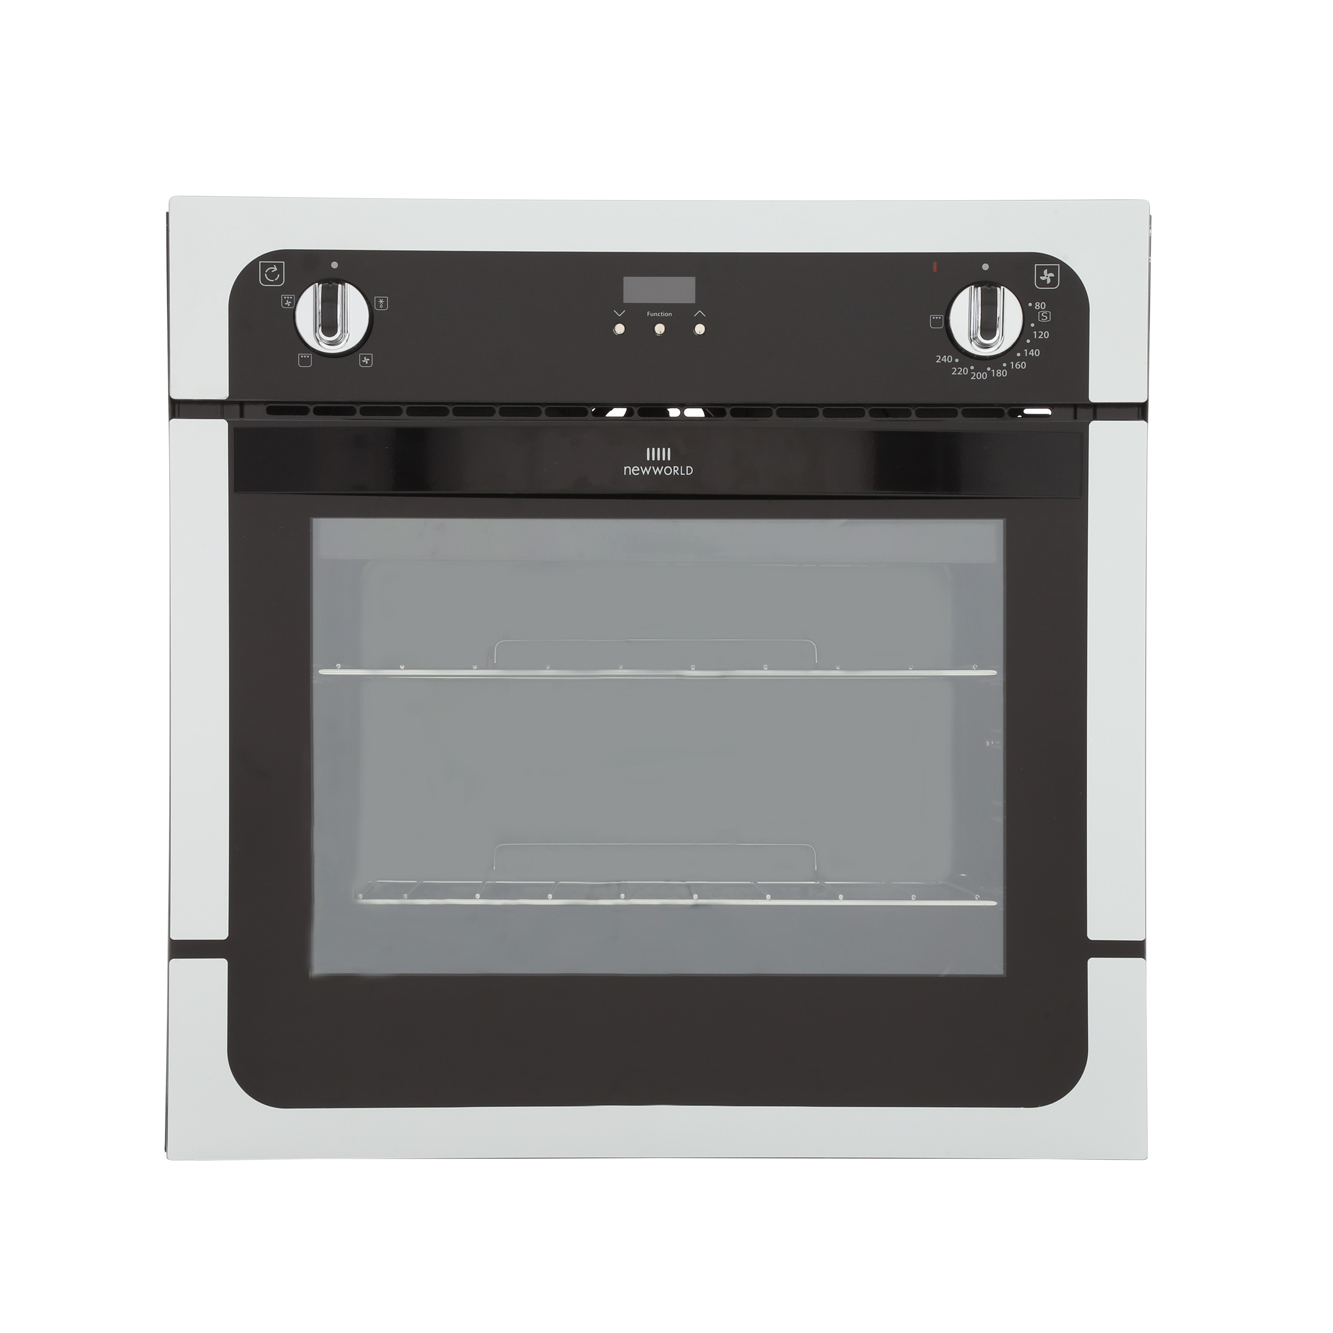 New World NW601FP White Single Built In Electric Oven